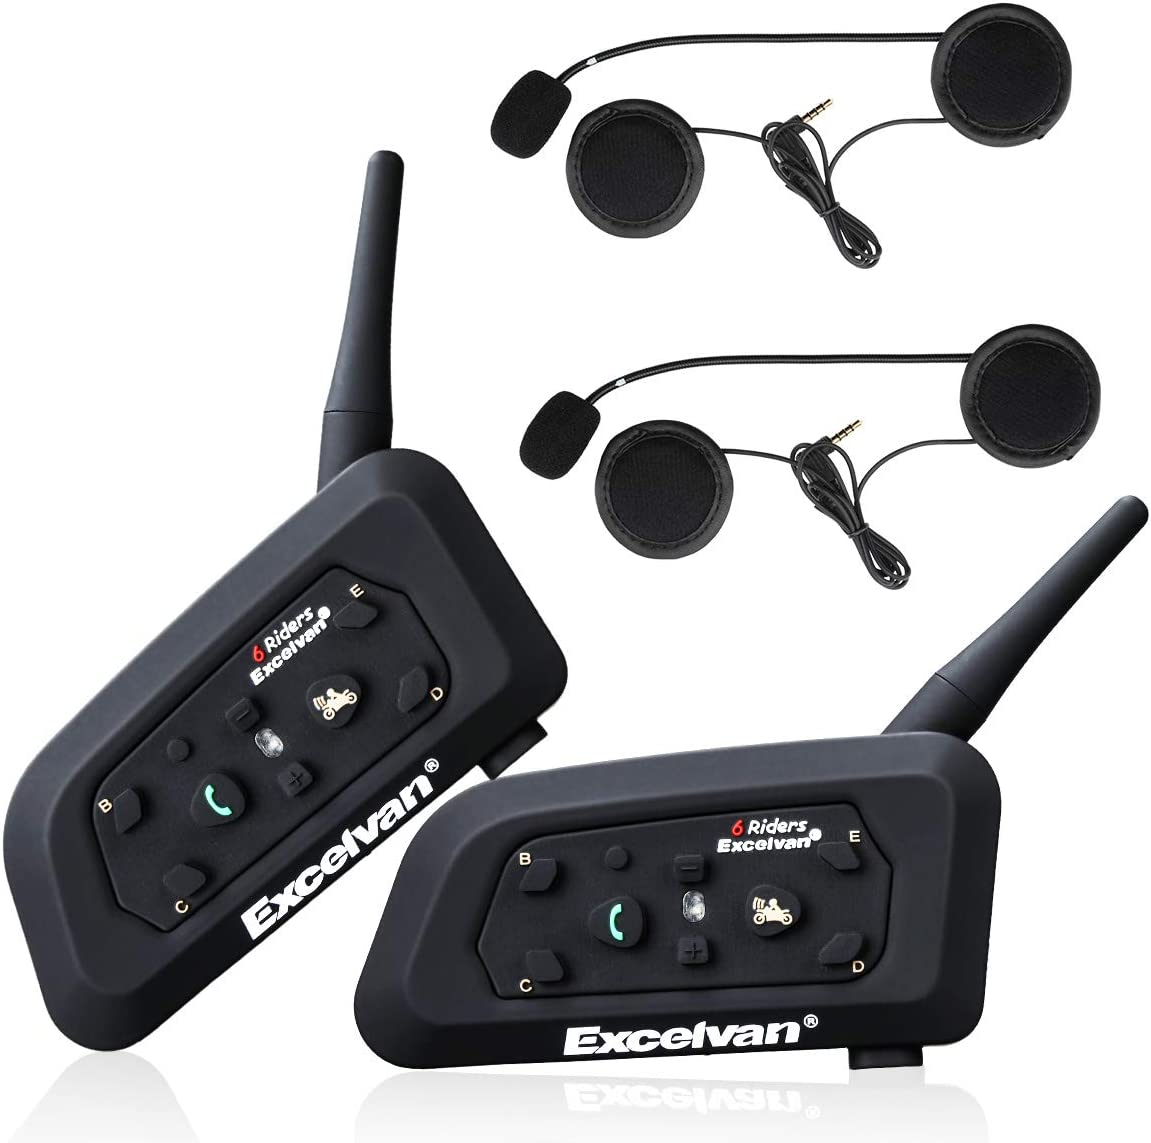 Excelvan 2pcs Motorcycle Intercom Helmet Bluetooth Headset 1 2km Wireless Motorbike Interphone Connect Up To 6 Riders For Riding And Skiing V6 Amazon Co Uk Electronics